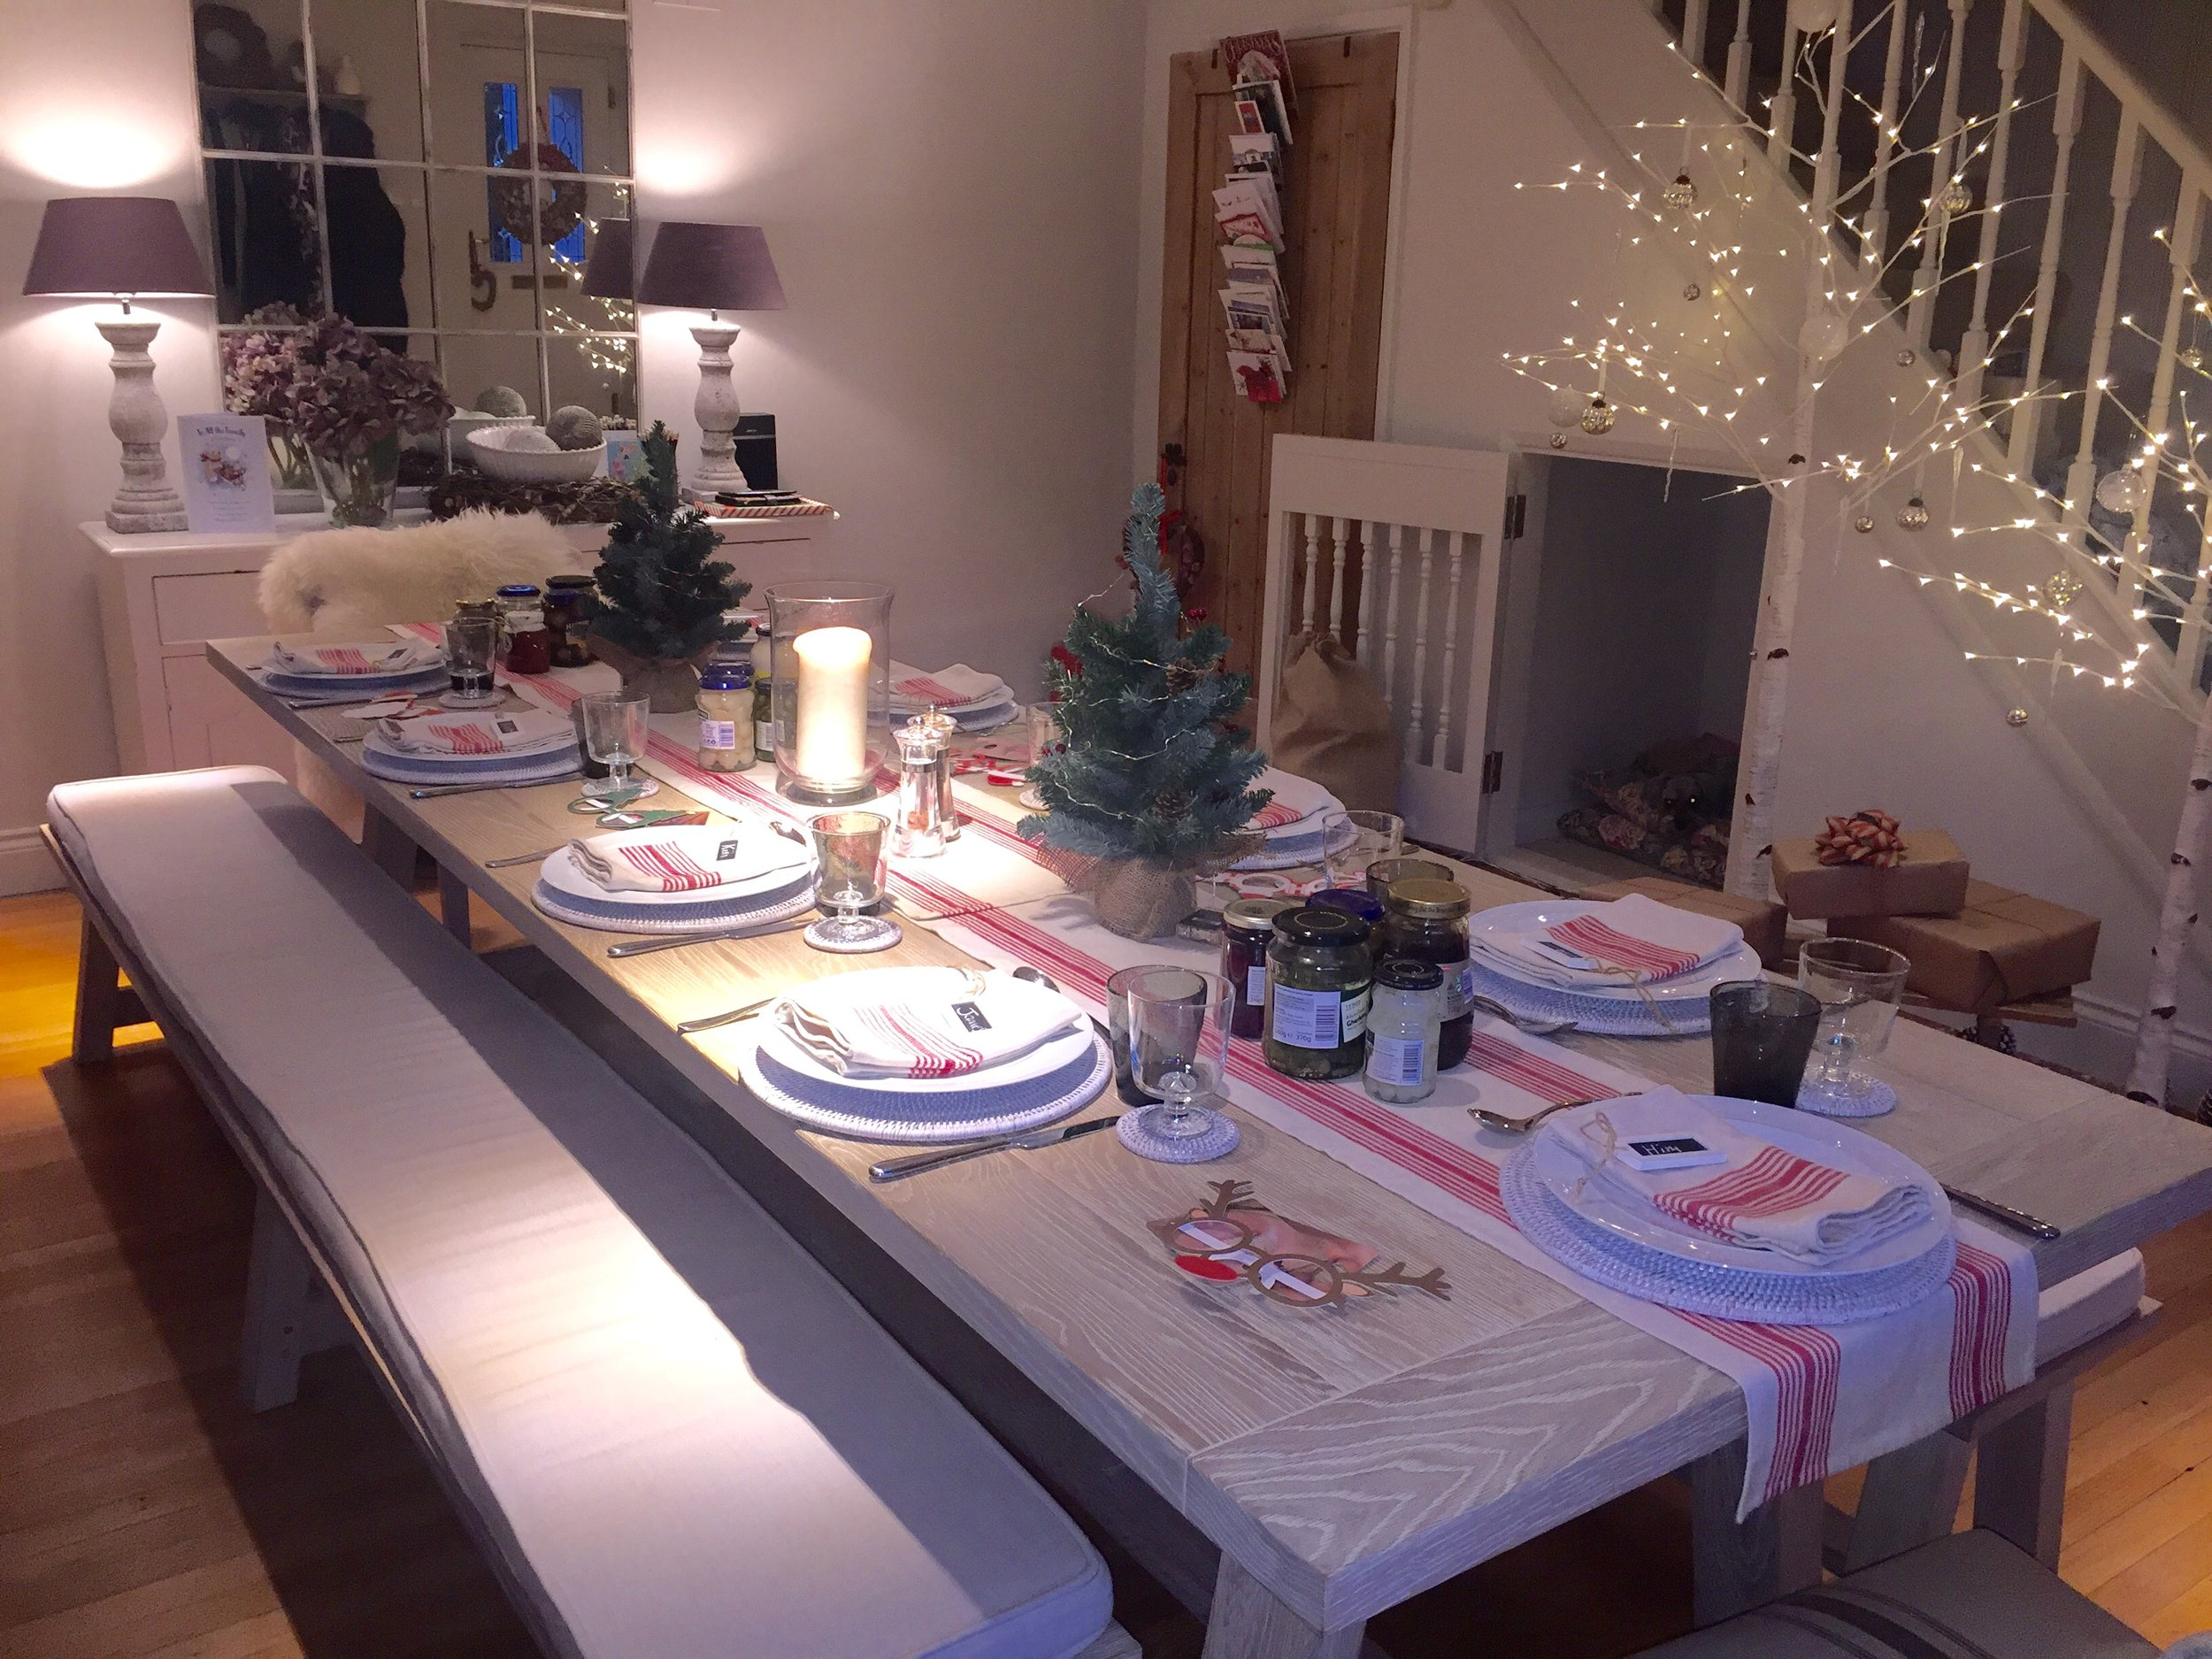 Boxing day table ready to go. Food wise it's my favourite day of the year, cold meats, mashed potato and pickles, absolute heaven.